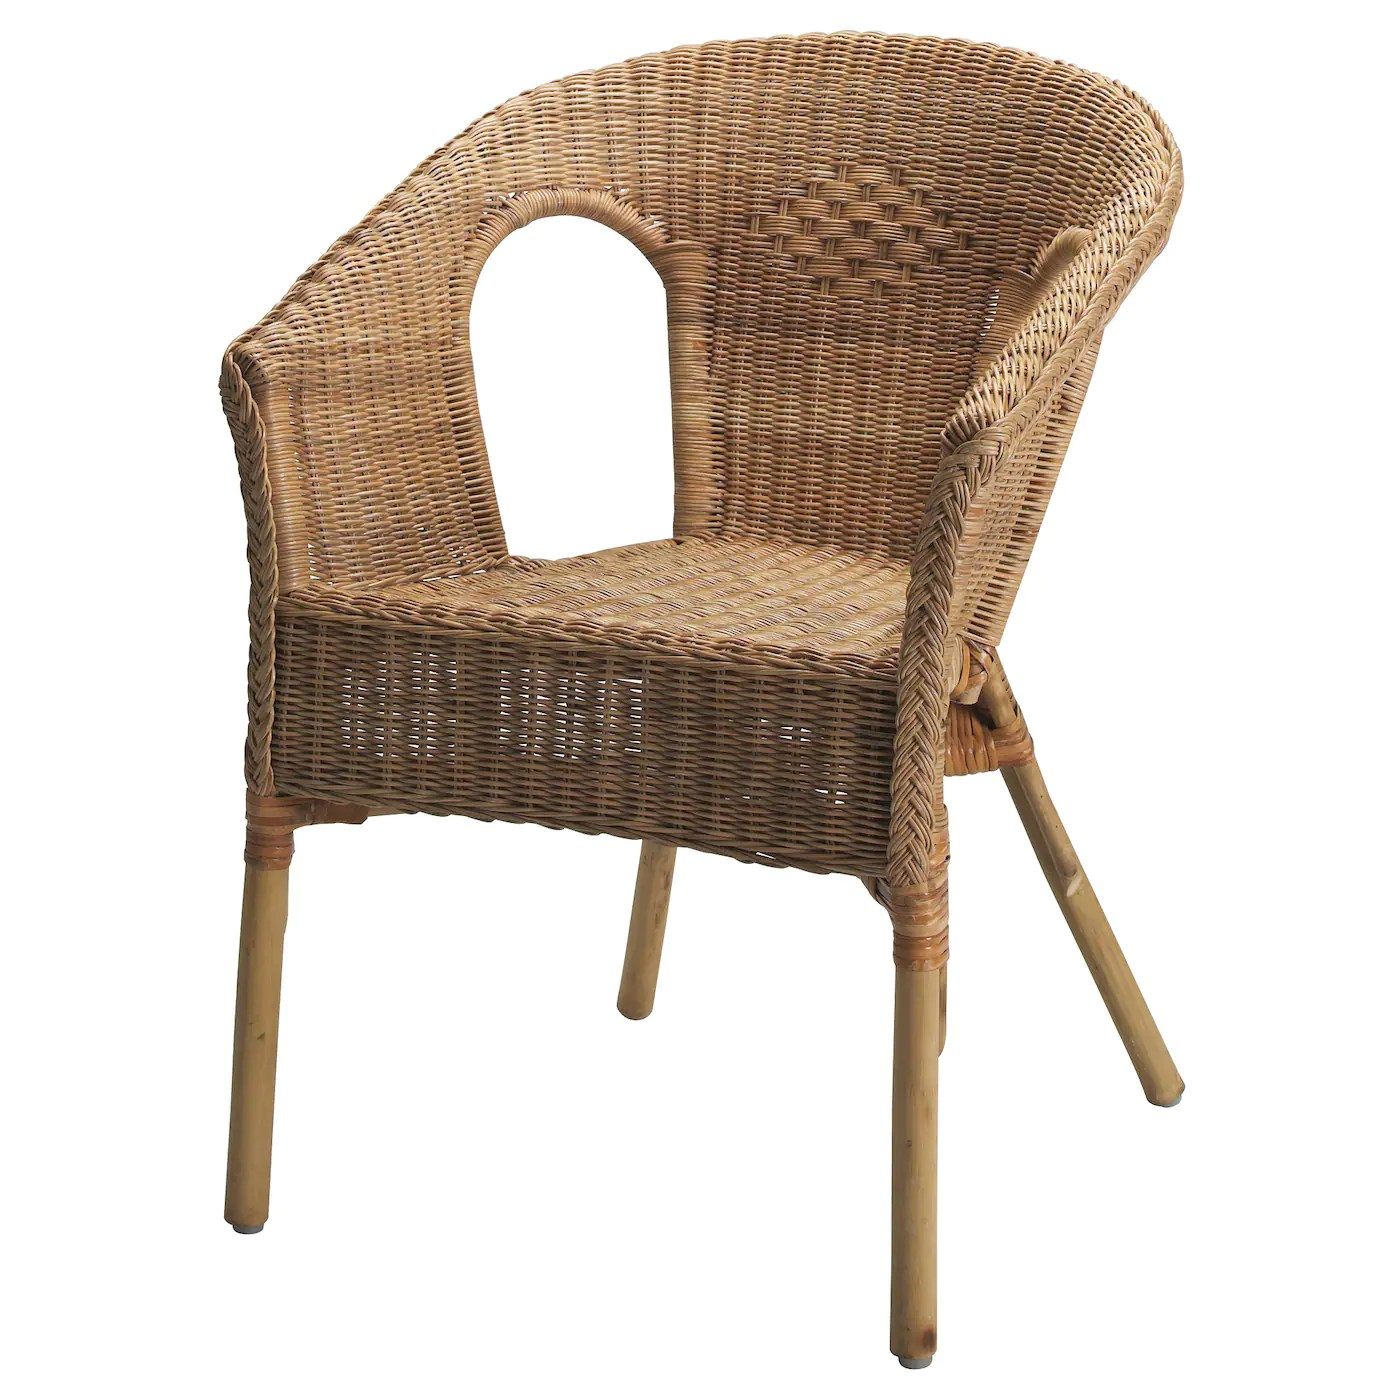 AGEN Chair Rattan bamboo   IKEA IKEA AGEN chair Handwoven  each piece of furniture is unique